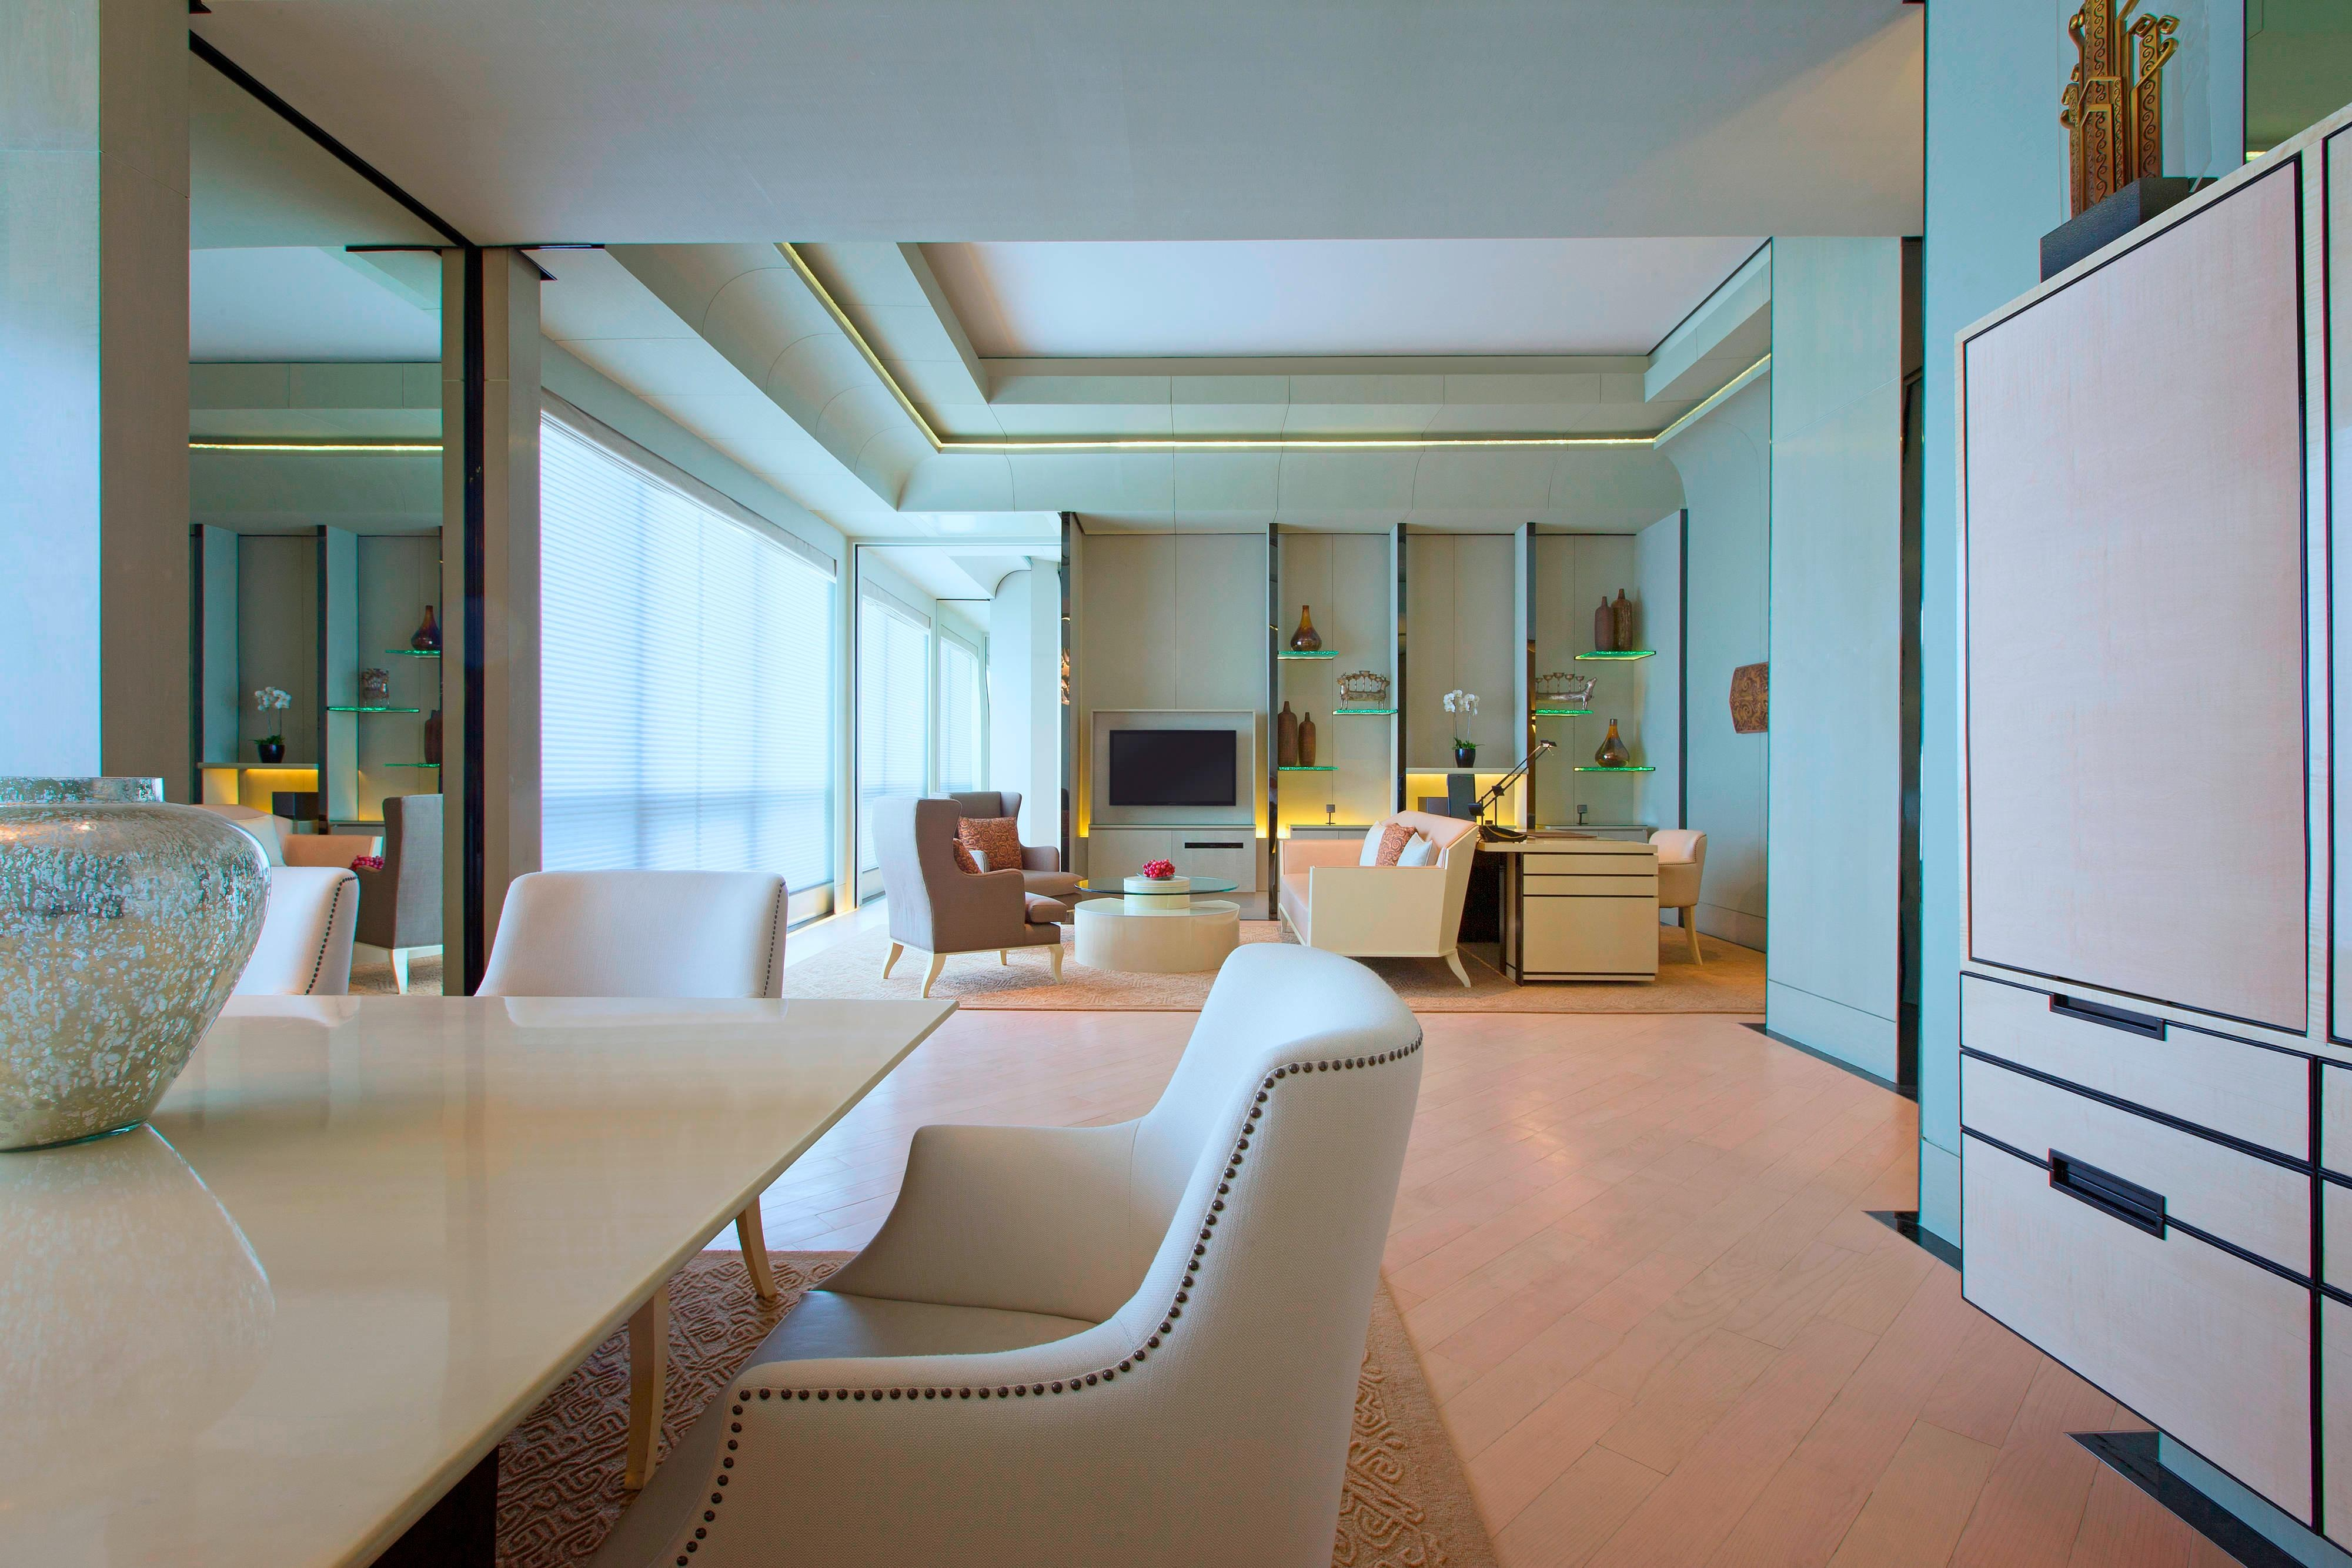 Suite - Living Area in Daylight